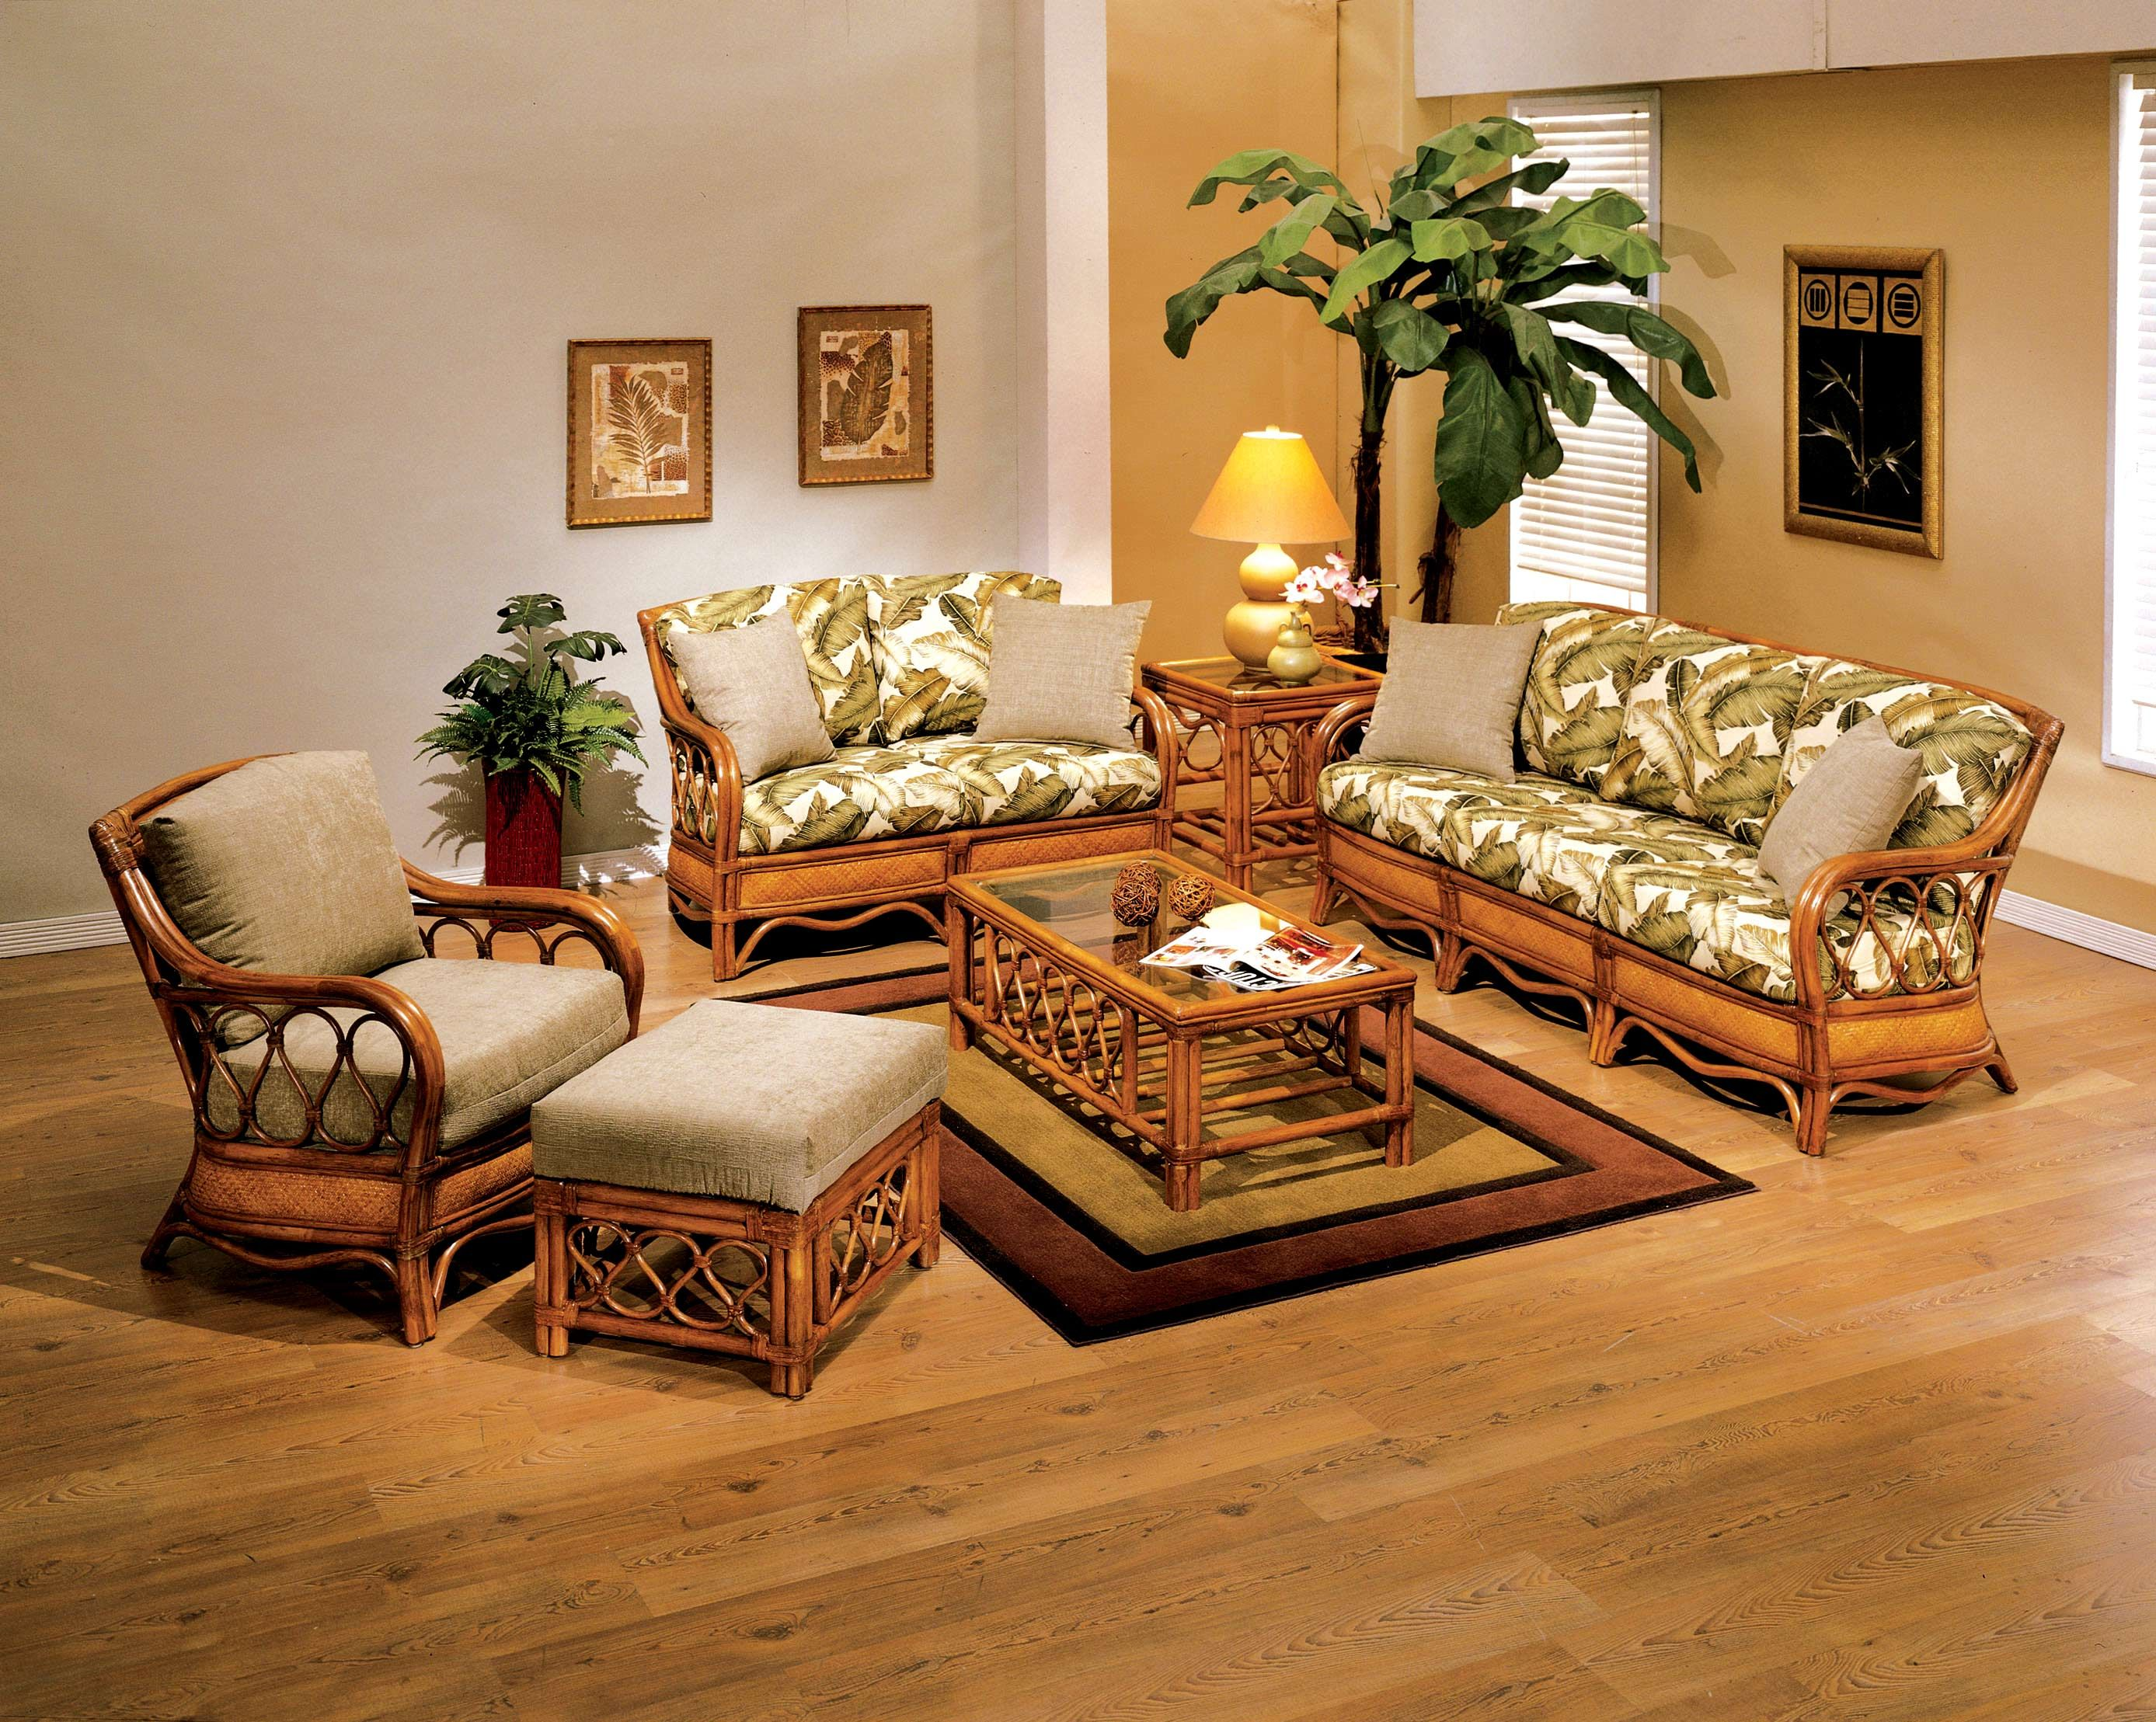 rattan, wicker, bamboo chairs | rattan living room furniture gallery